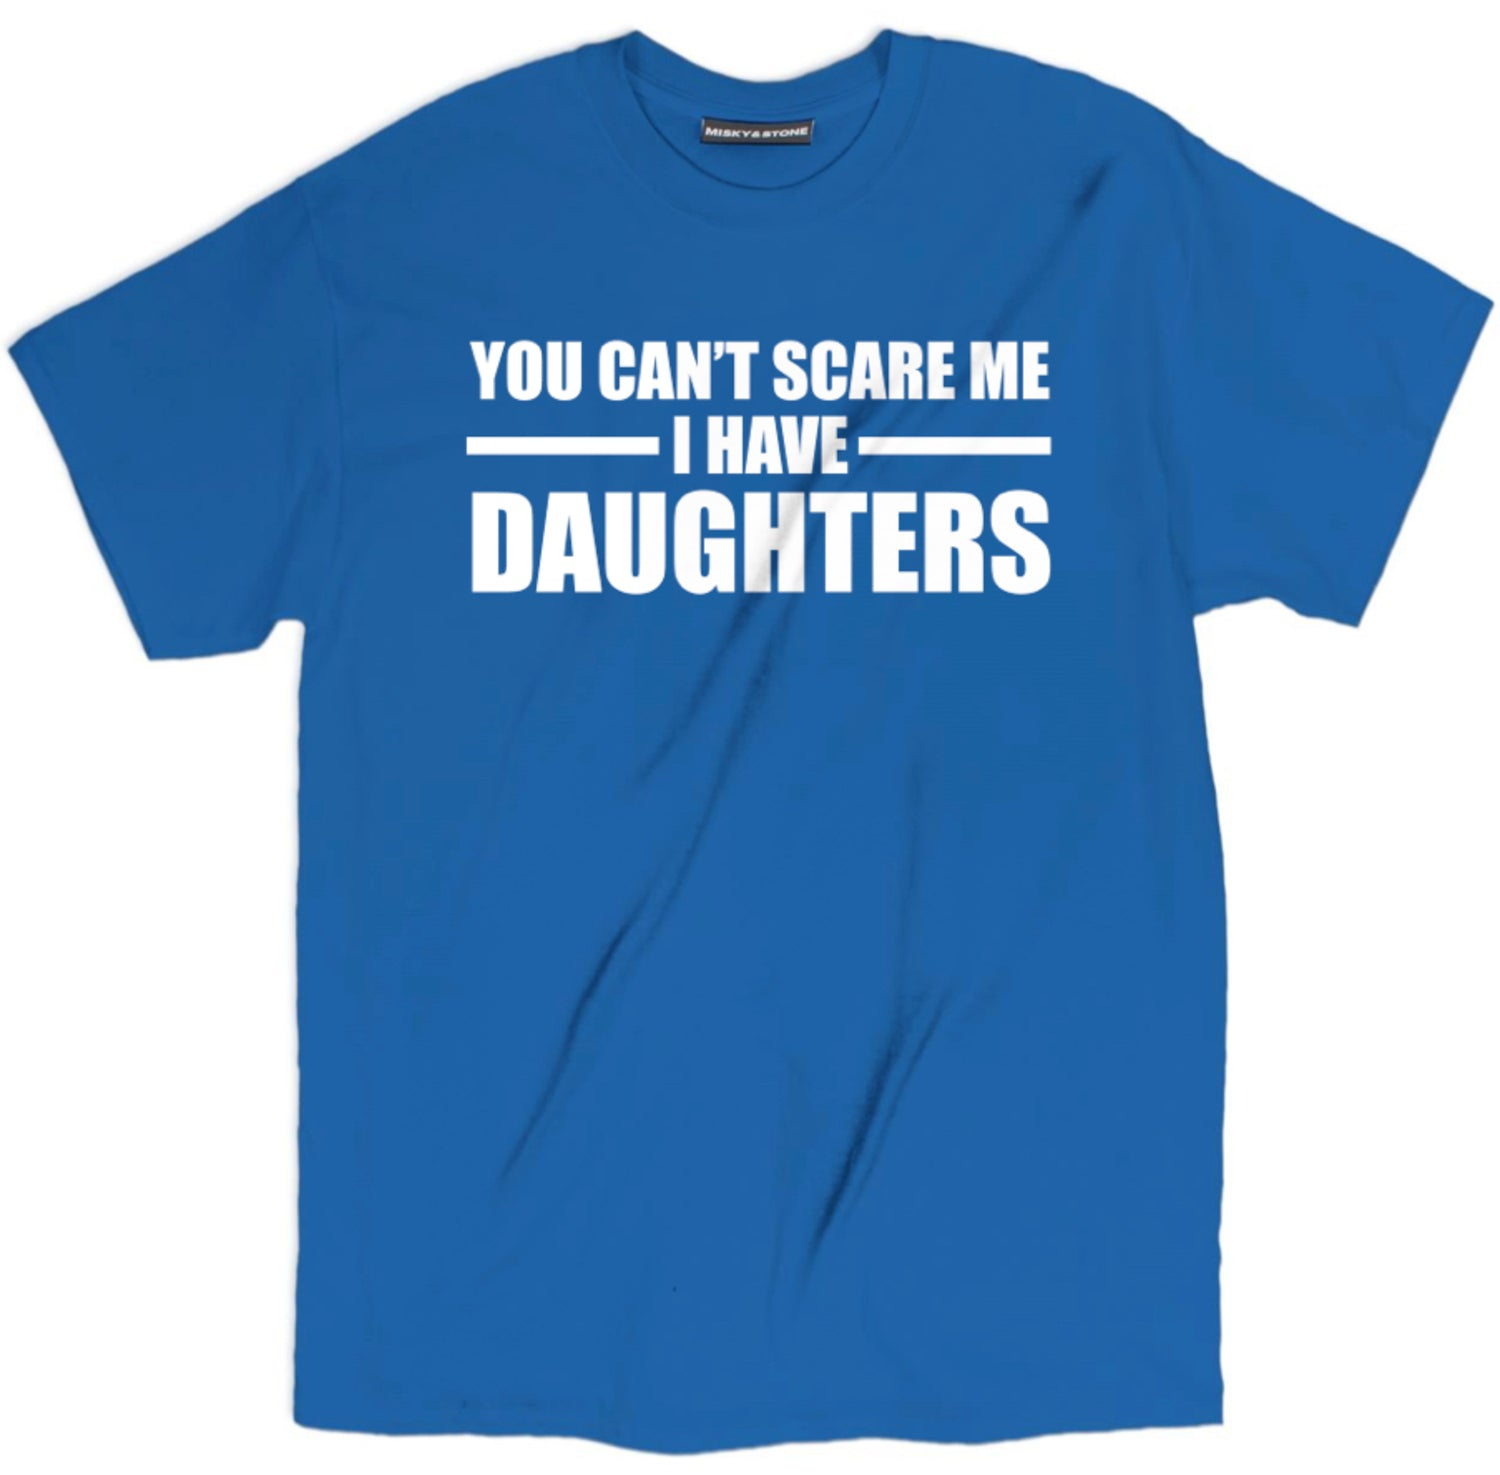 fathers day shirts, father's day t shirts, dad shirts, father's day shirt, funny dad shirts, fathers day tee shirts, daddy shirt, funny fathers day shirts, father's day tshirts, father shirts, best dad t shirt, star wars father's day shirt, best dad shirts,